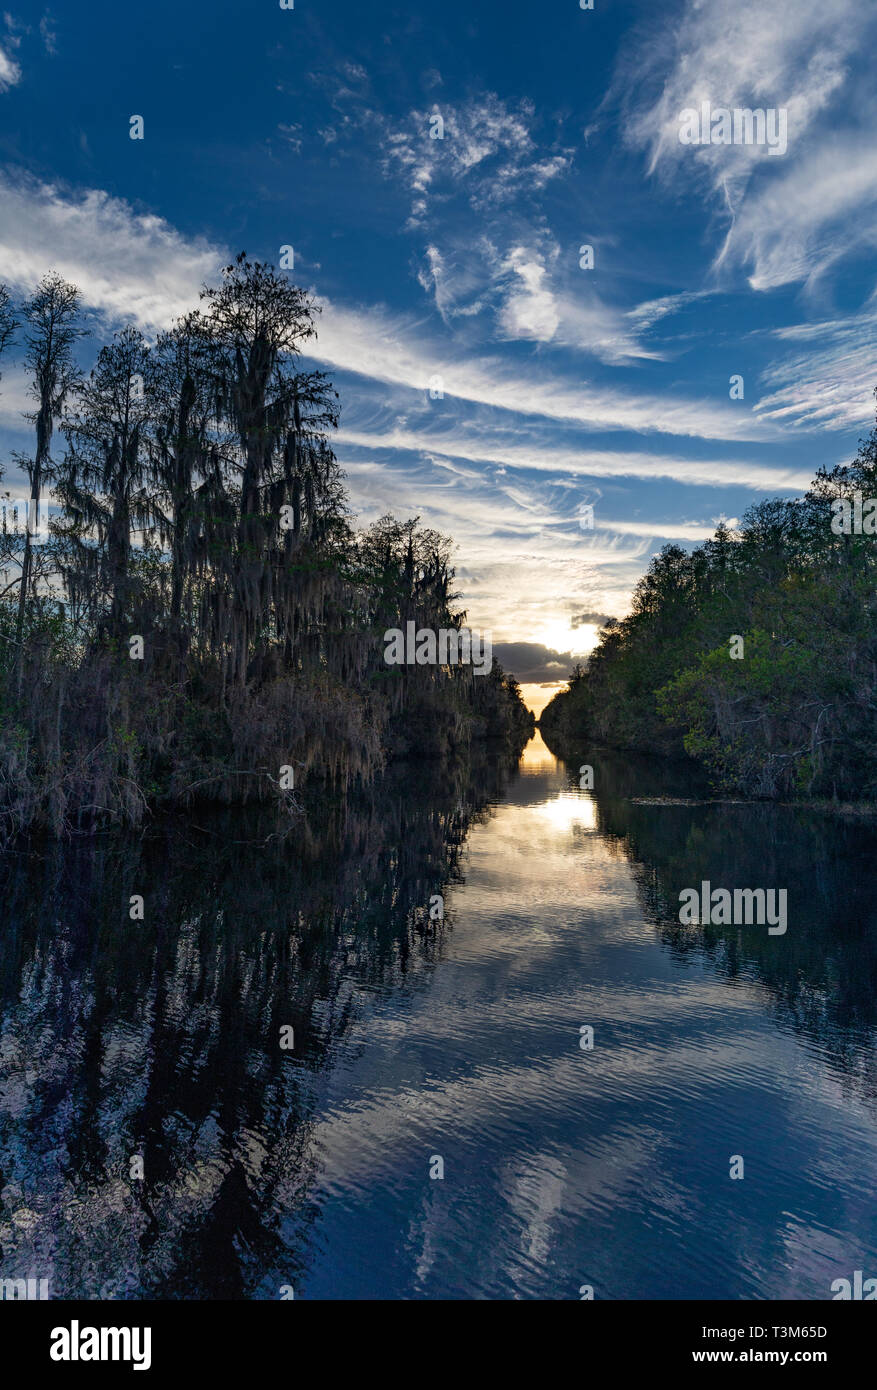 Canal at south entrance to Okefenokee swamp, with sunset in distance. Stock Photo